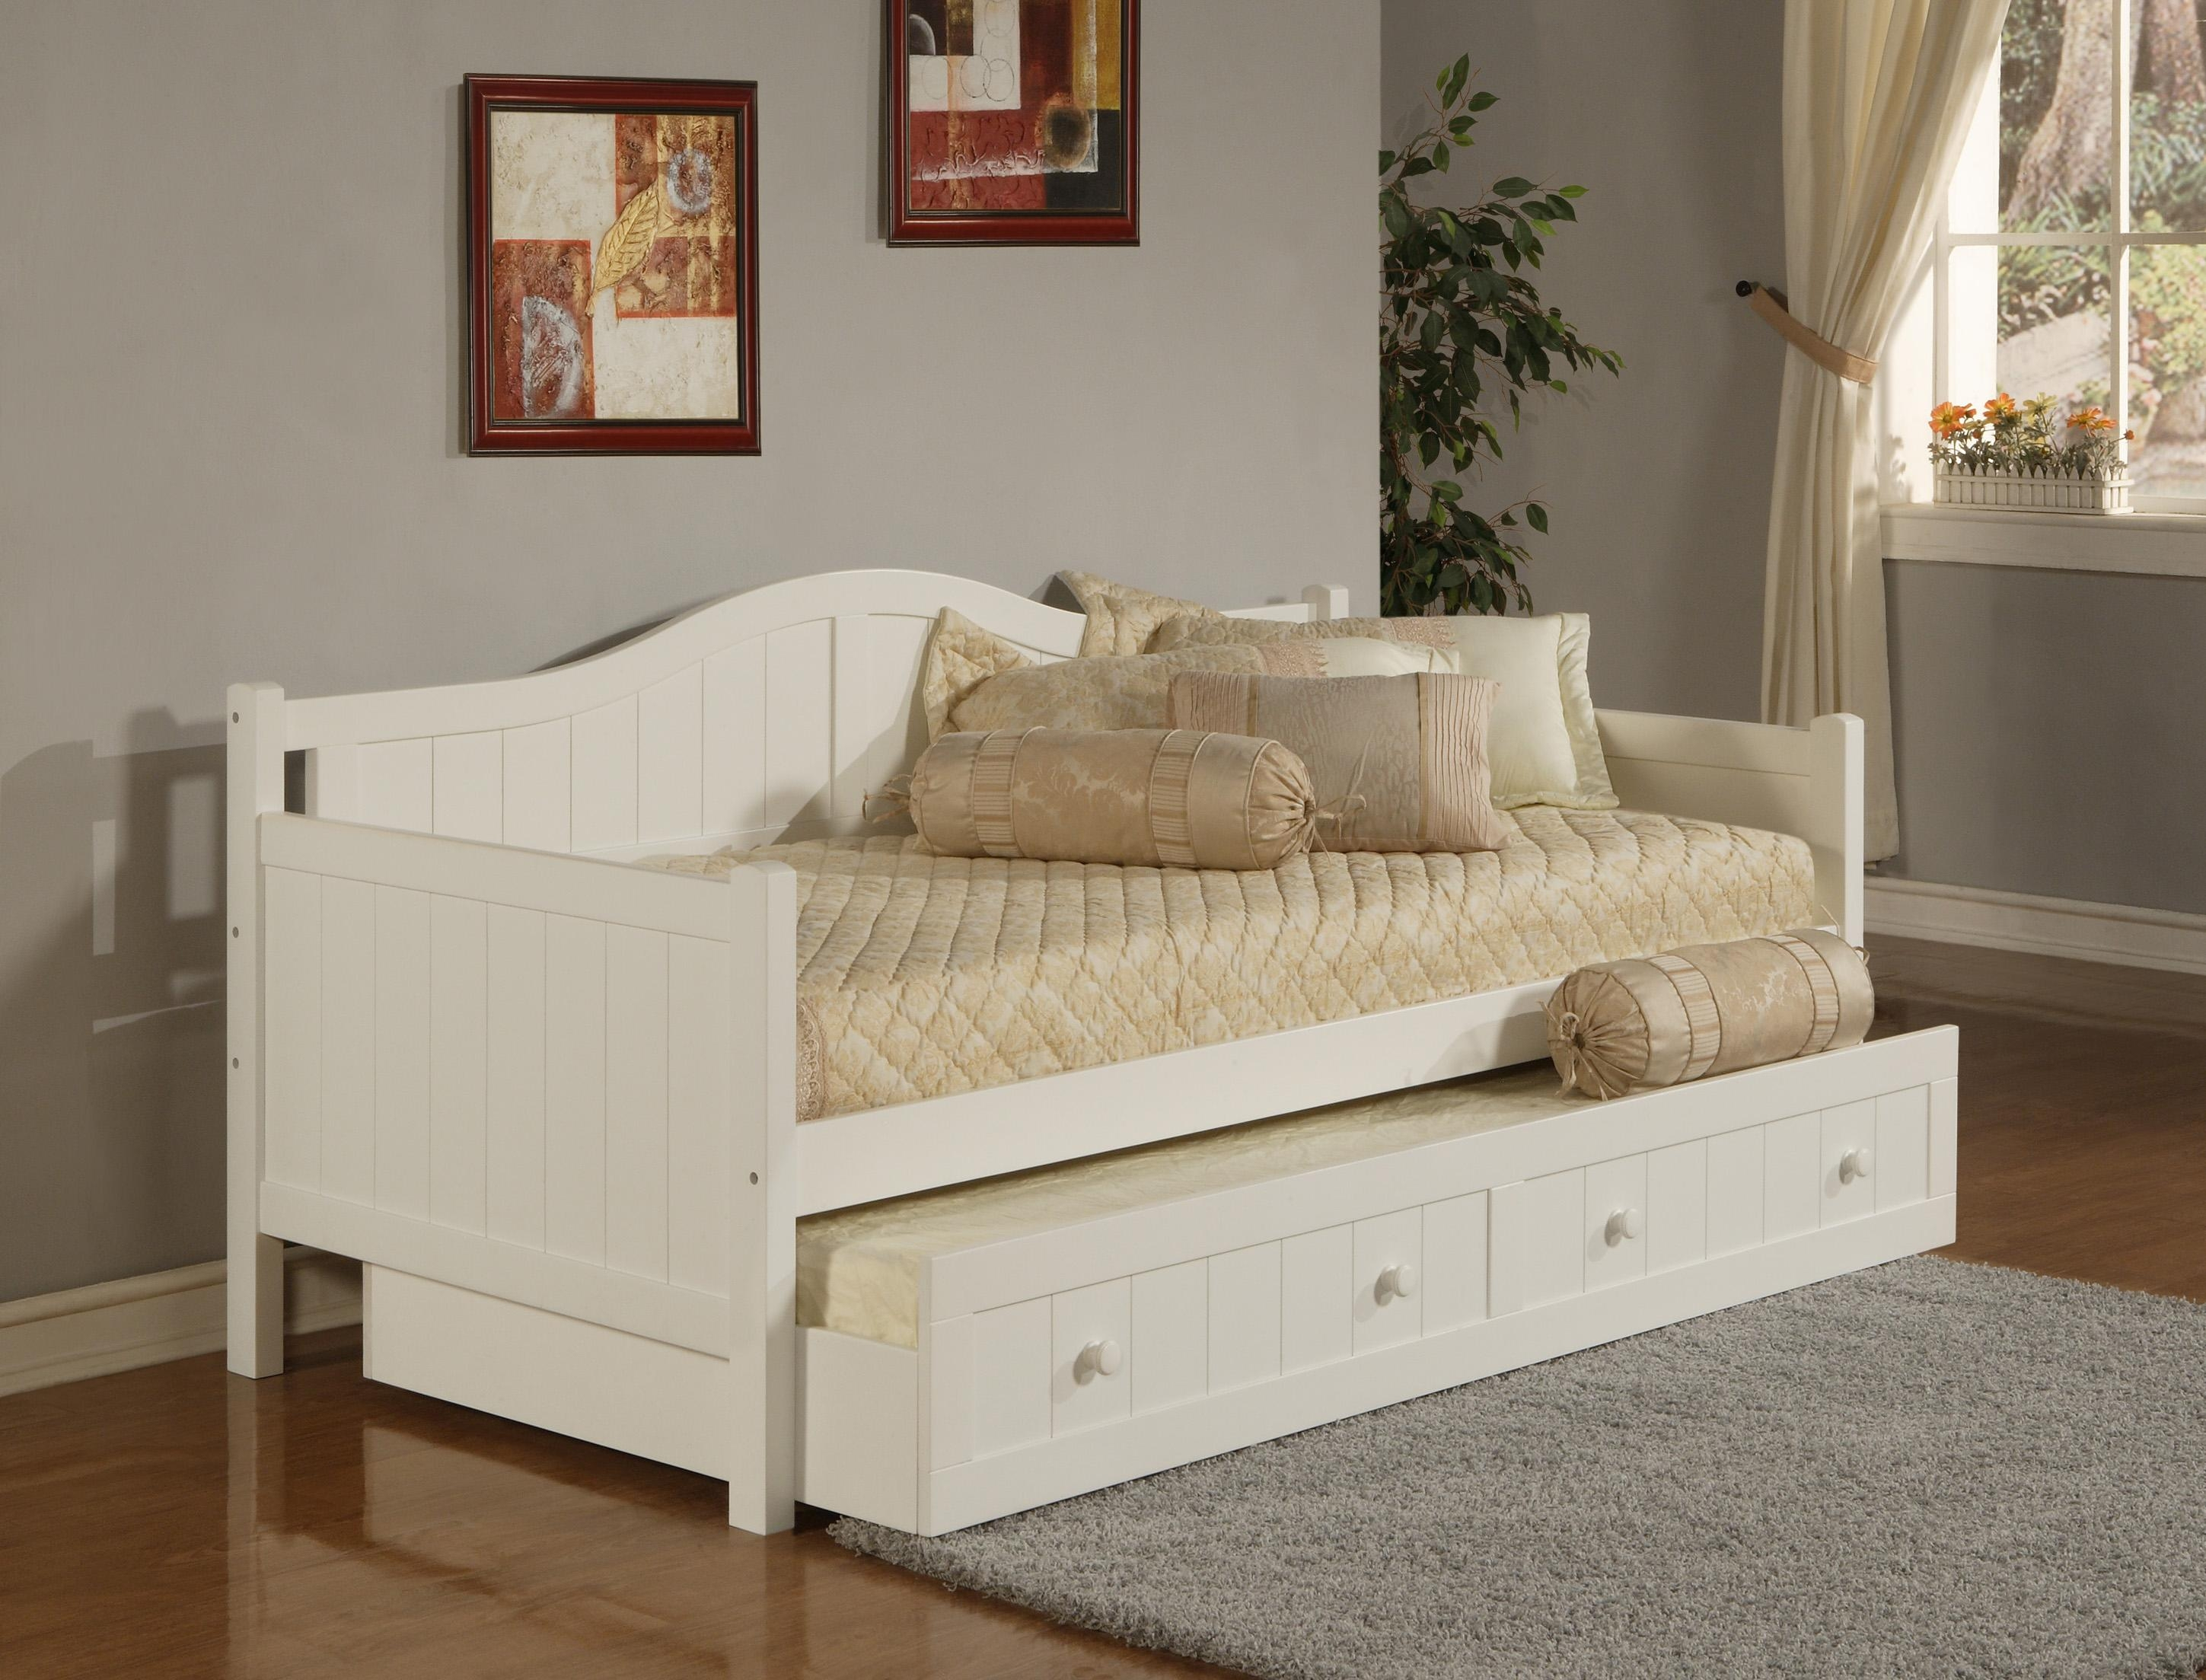 Full Size Day Beds | Full Size Daybed with Trundle | Full Size Trundle Beds for Adults